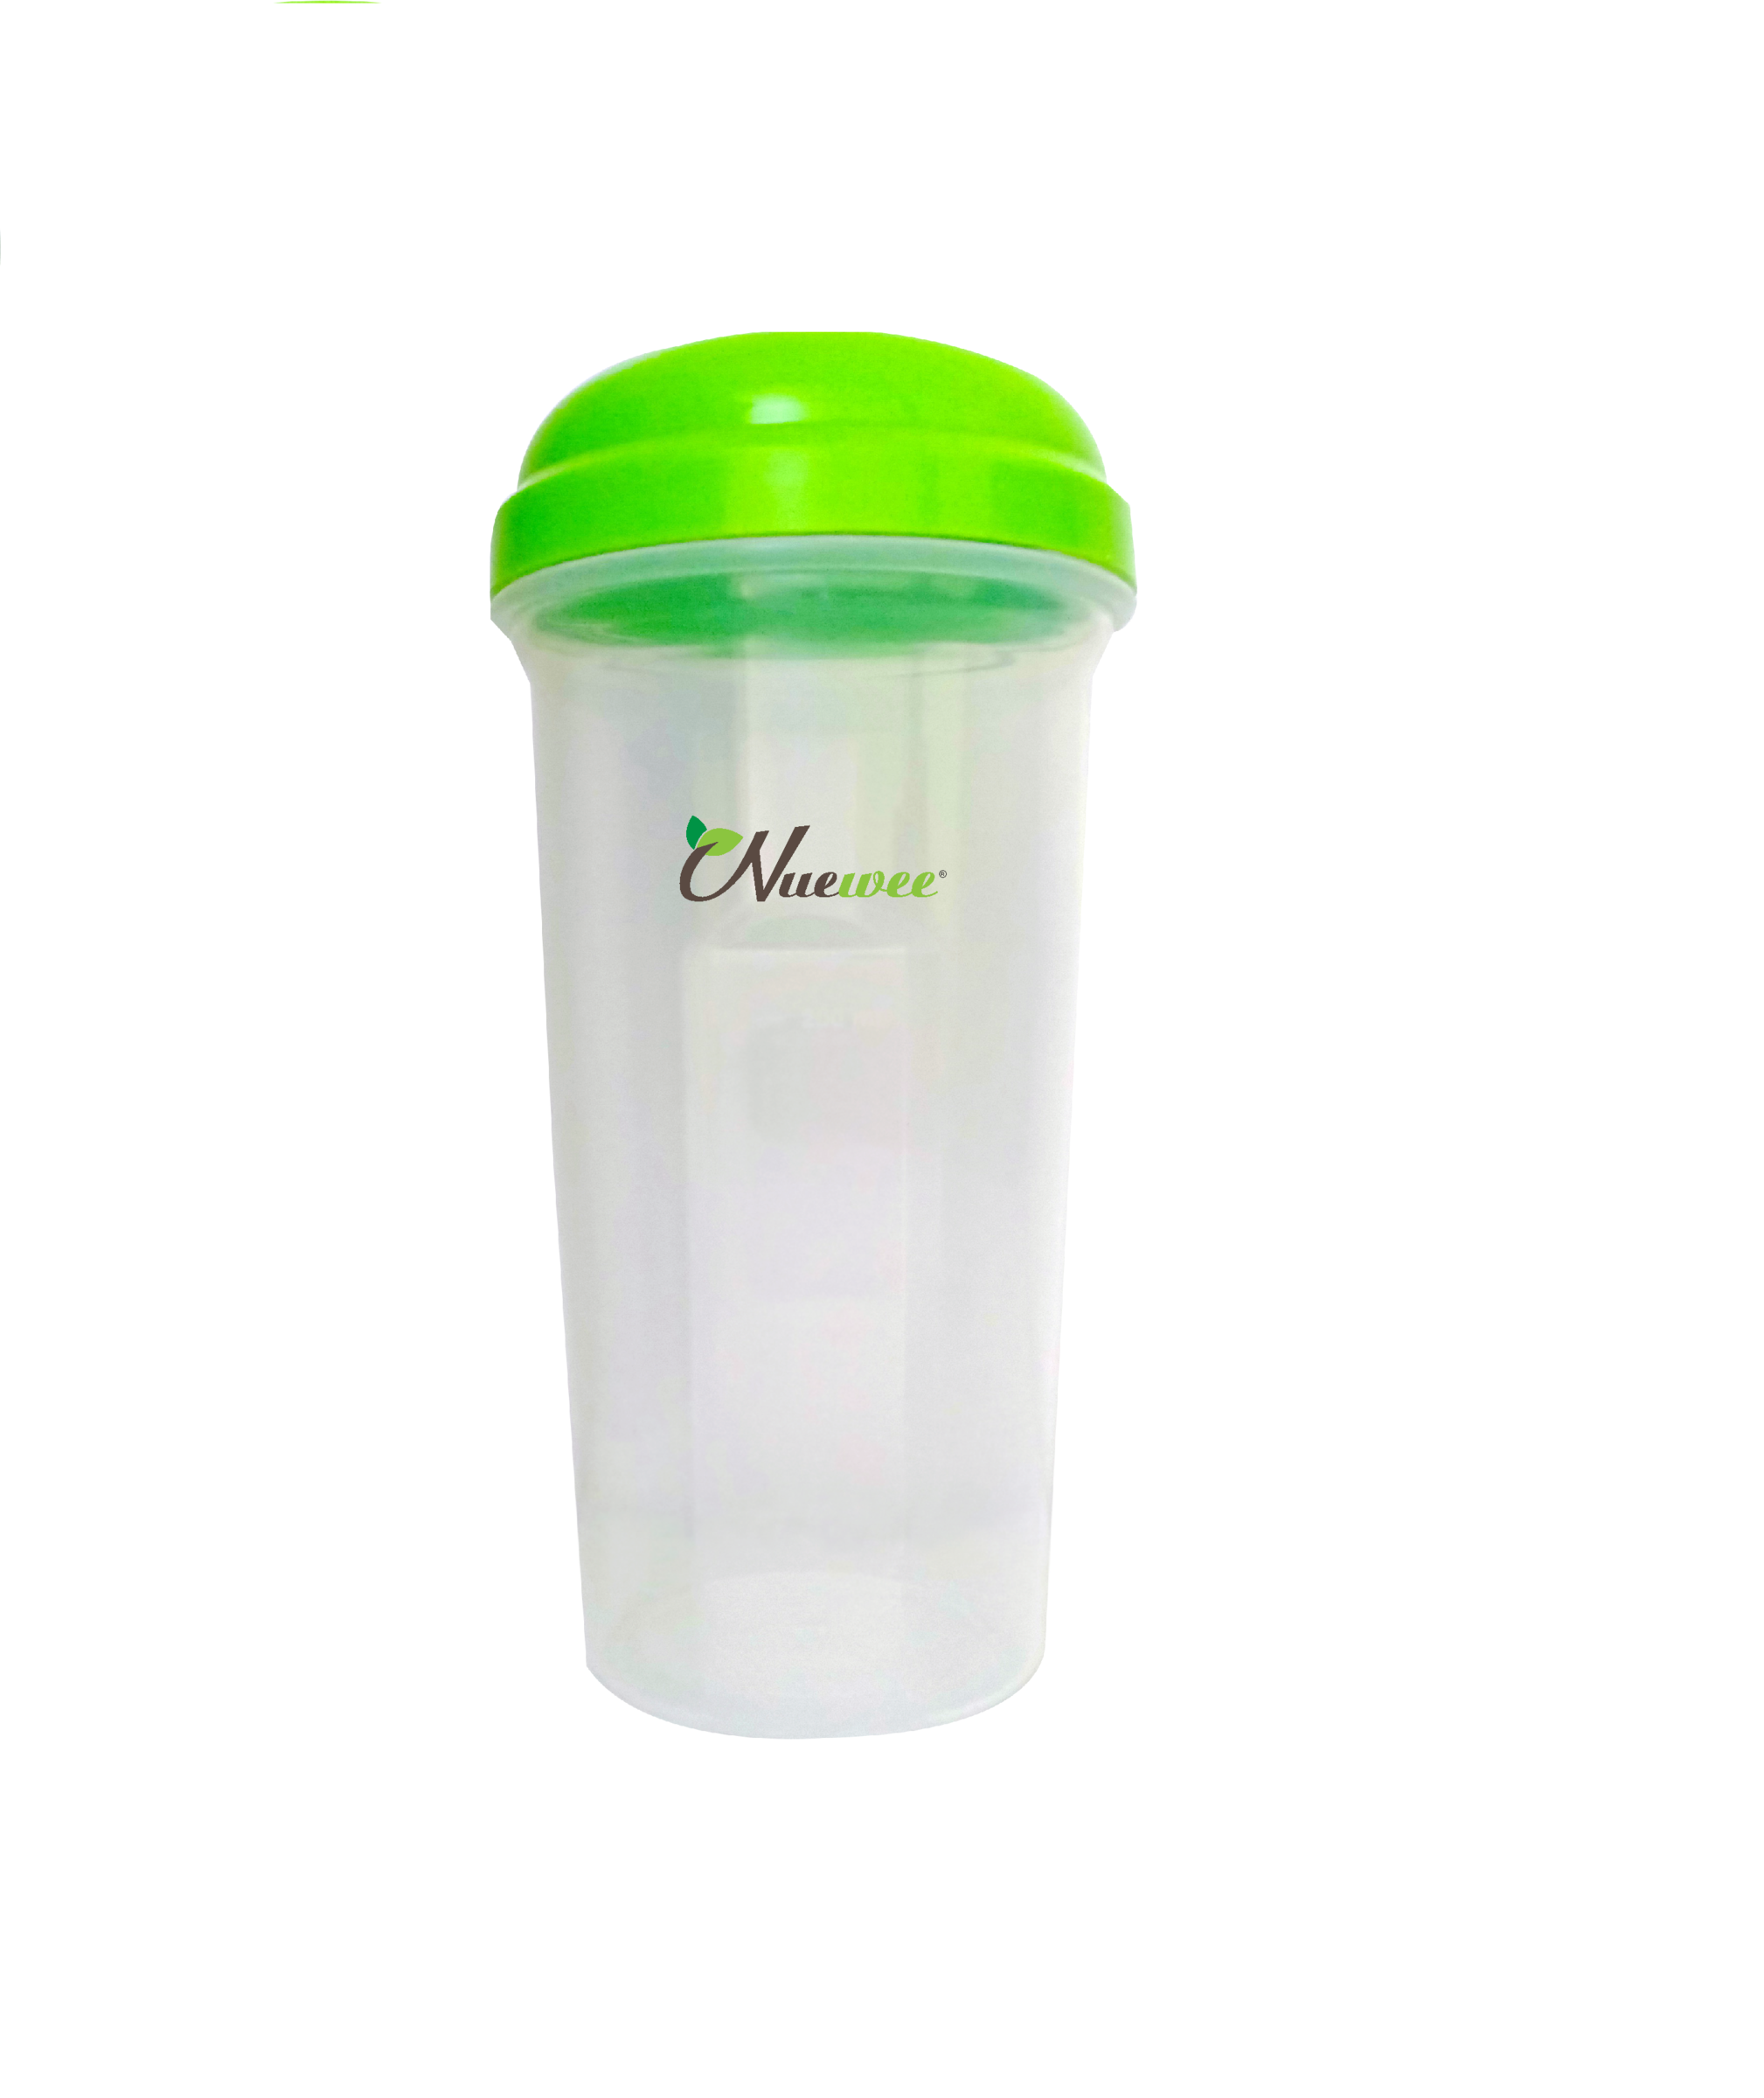 Nuewee-Nutrition-Shaker.png